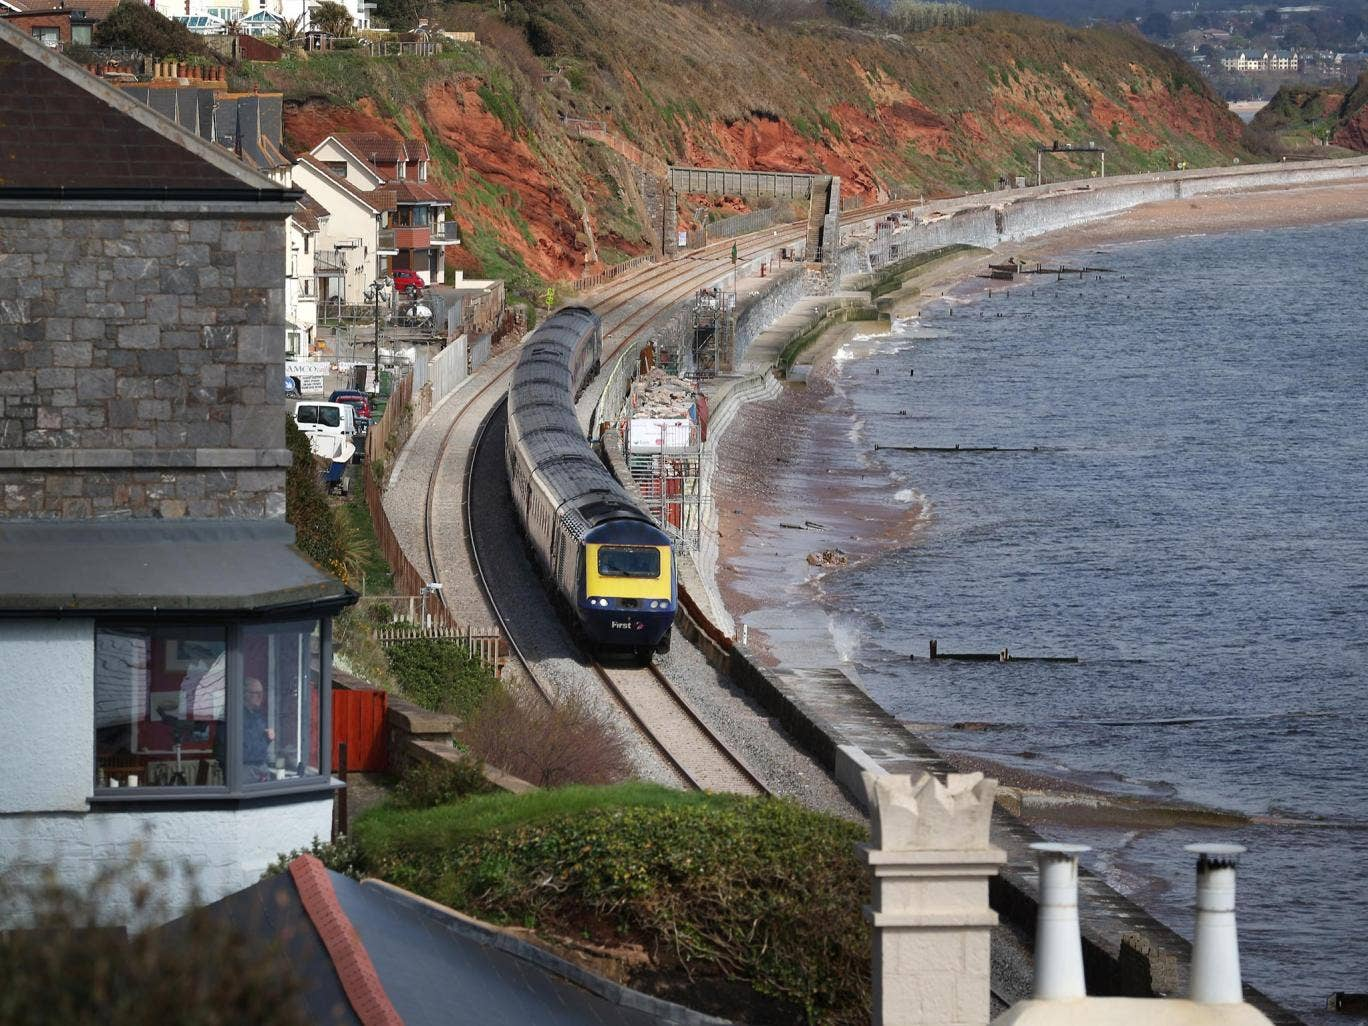 A train passes along the rebuilt track in Dawlish